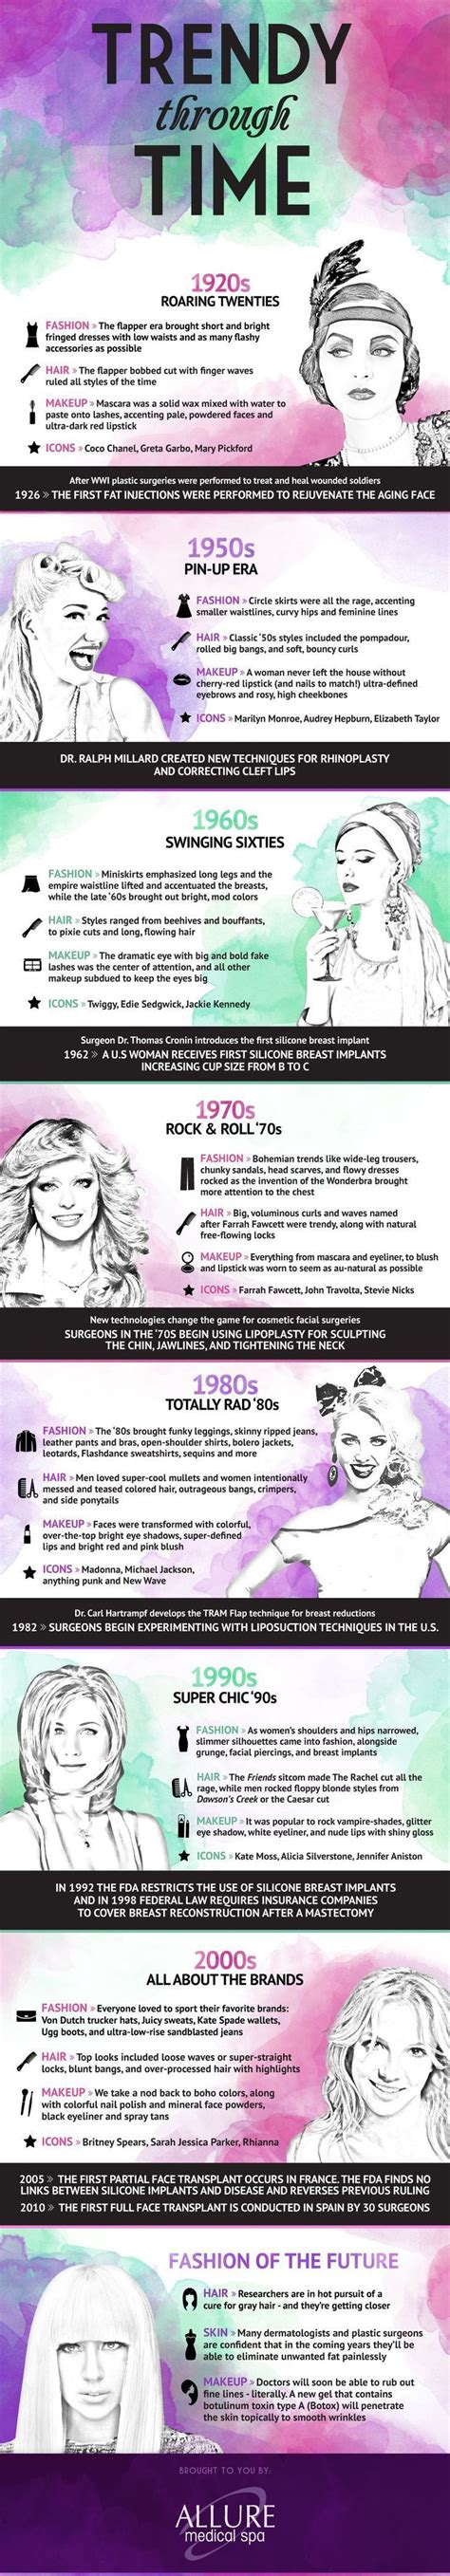 tips style and fashion trends makeup tips s makeup and fashion style through the